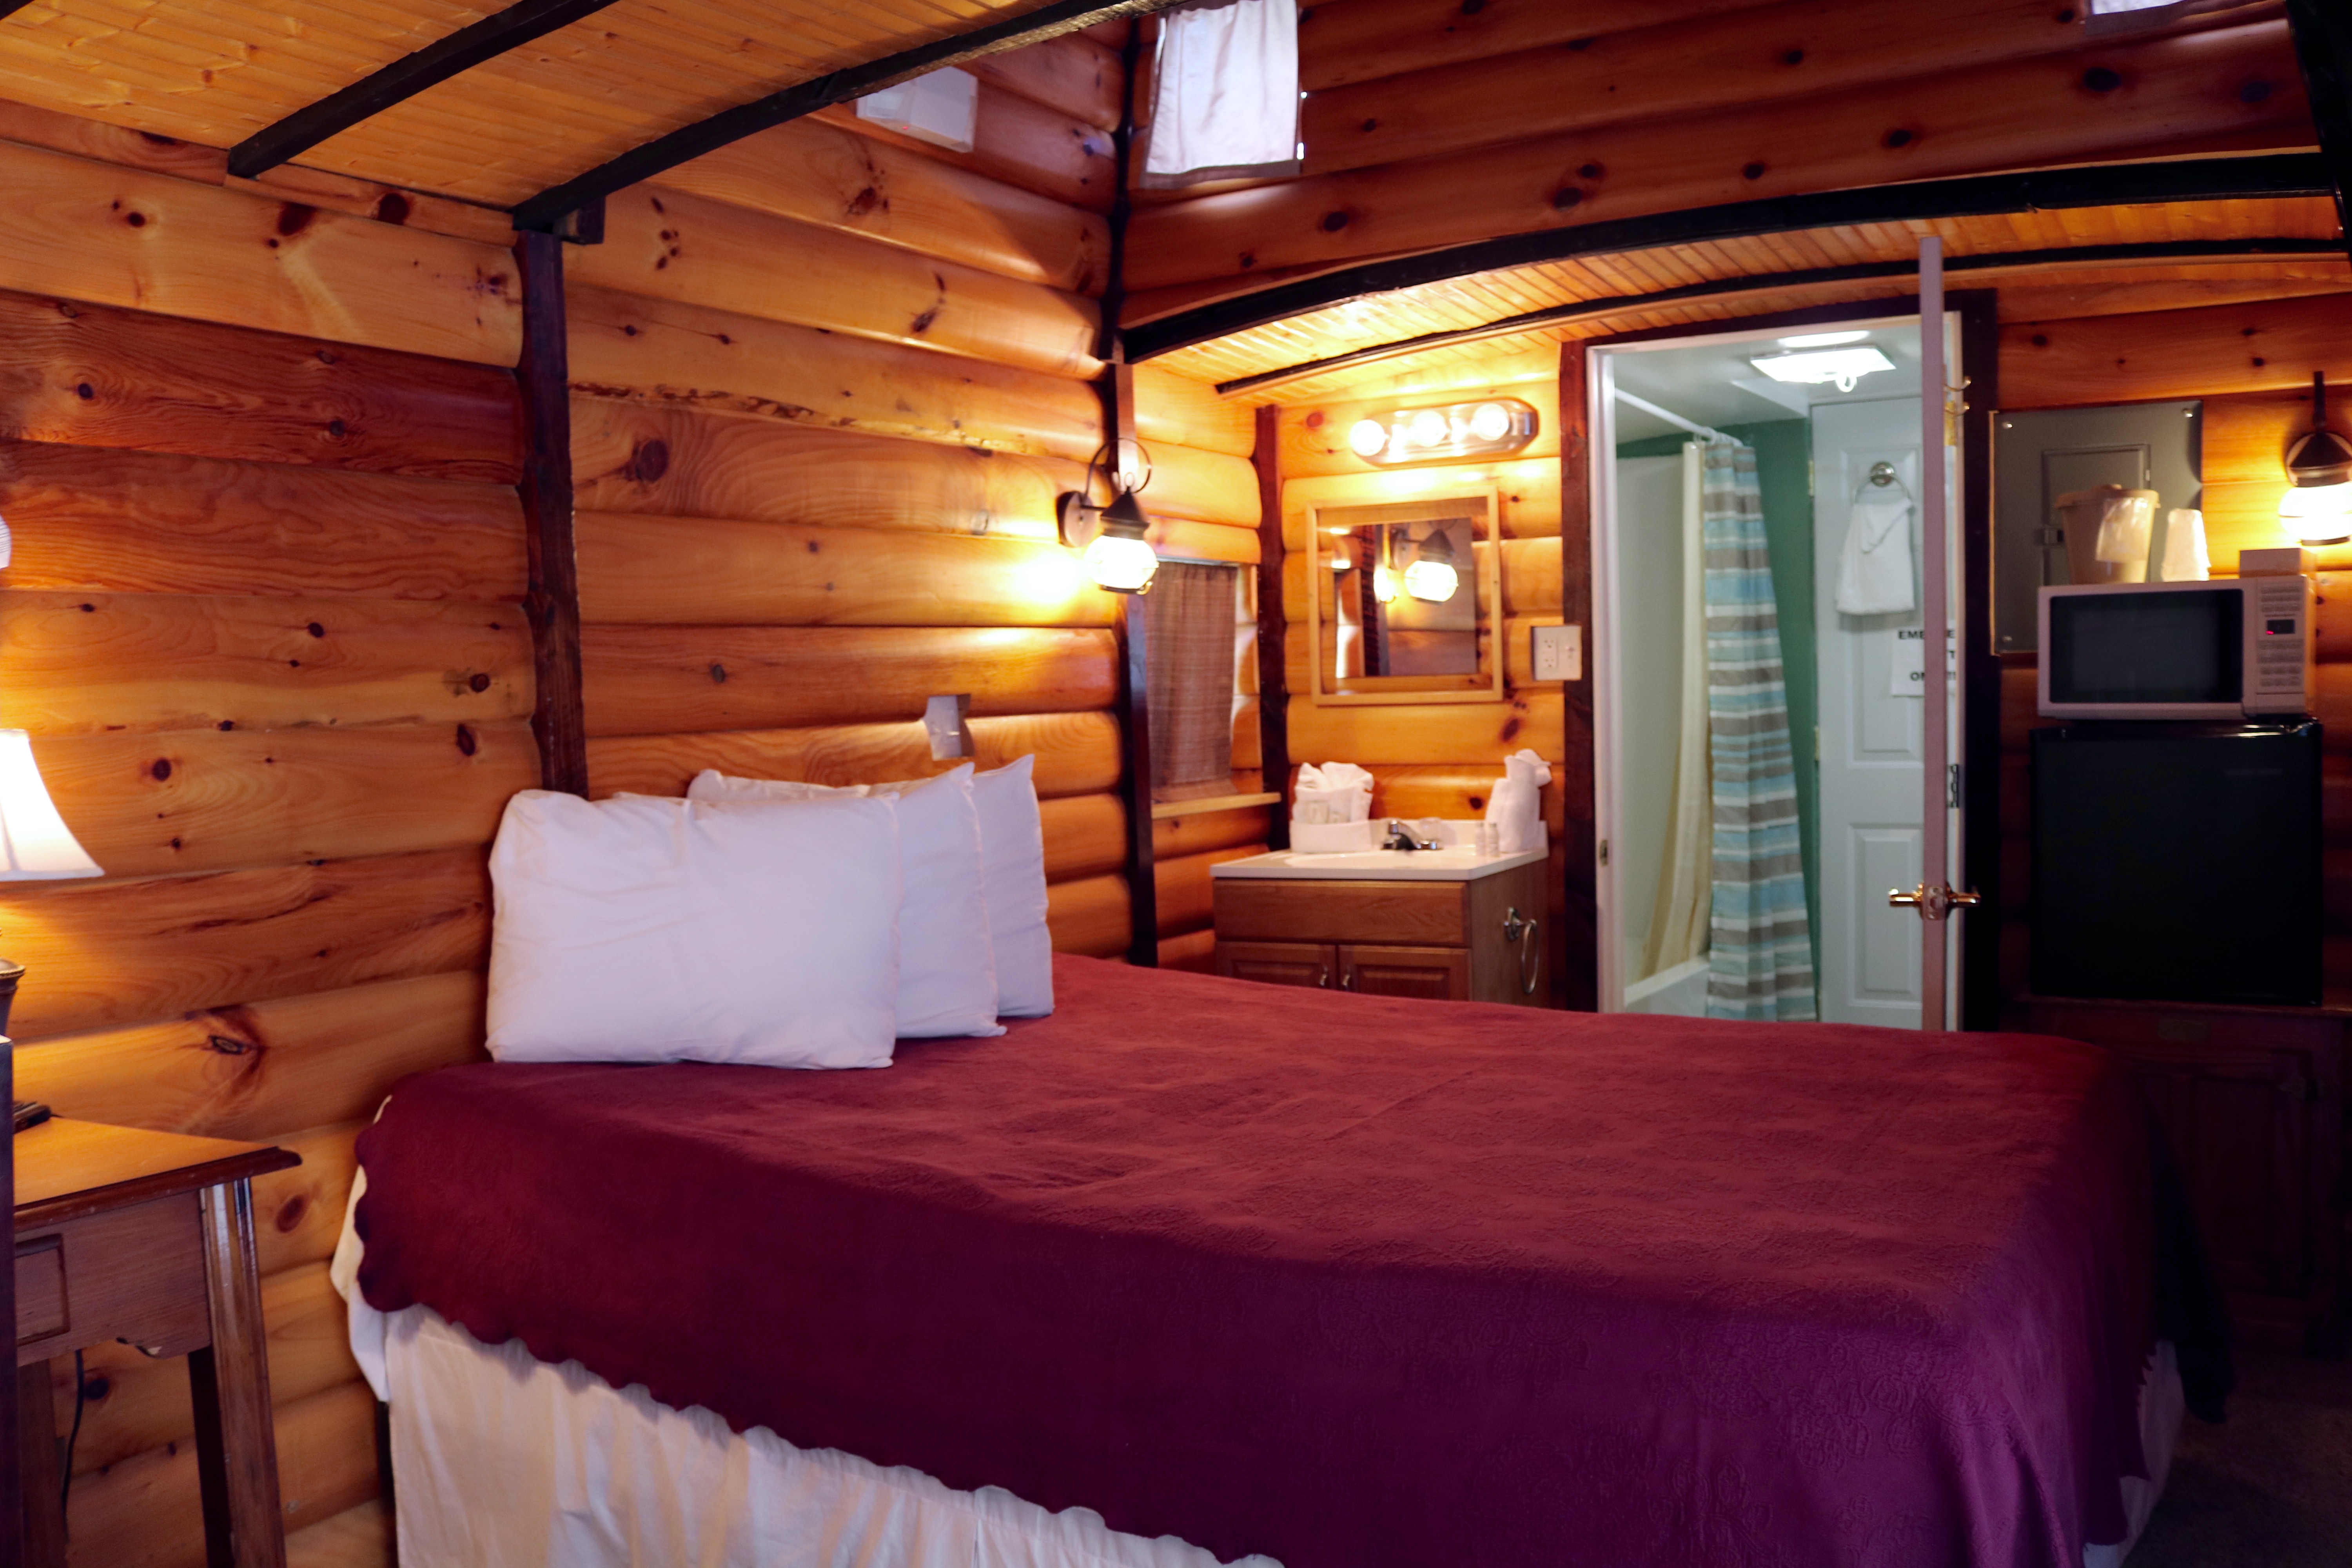 interior view of queen couples caboose motel room